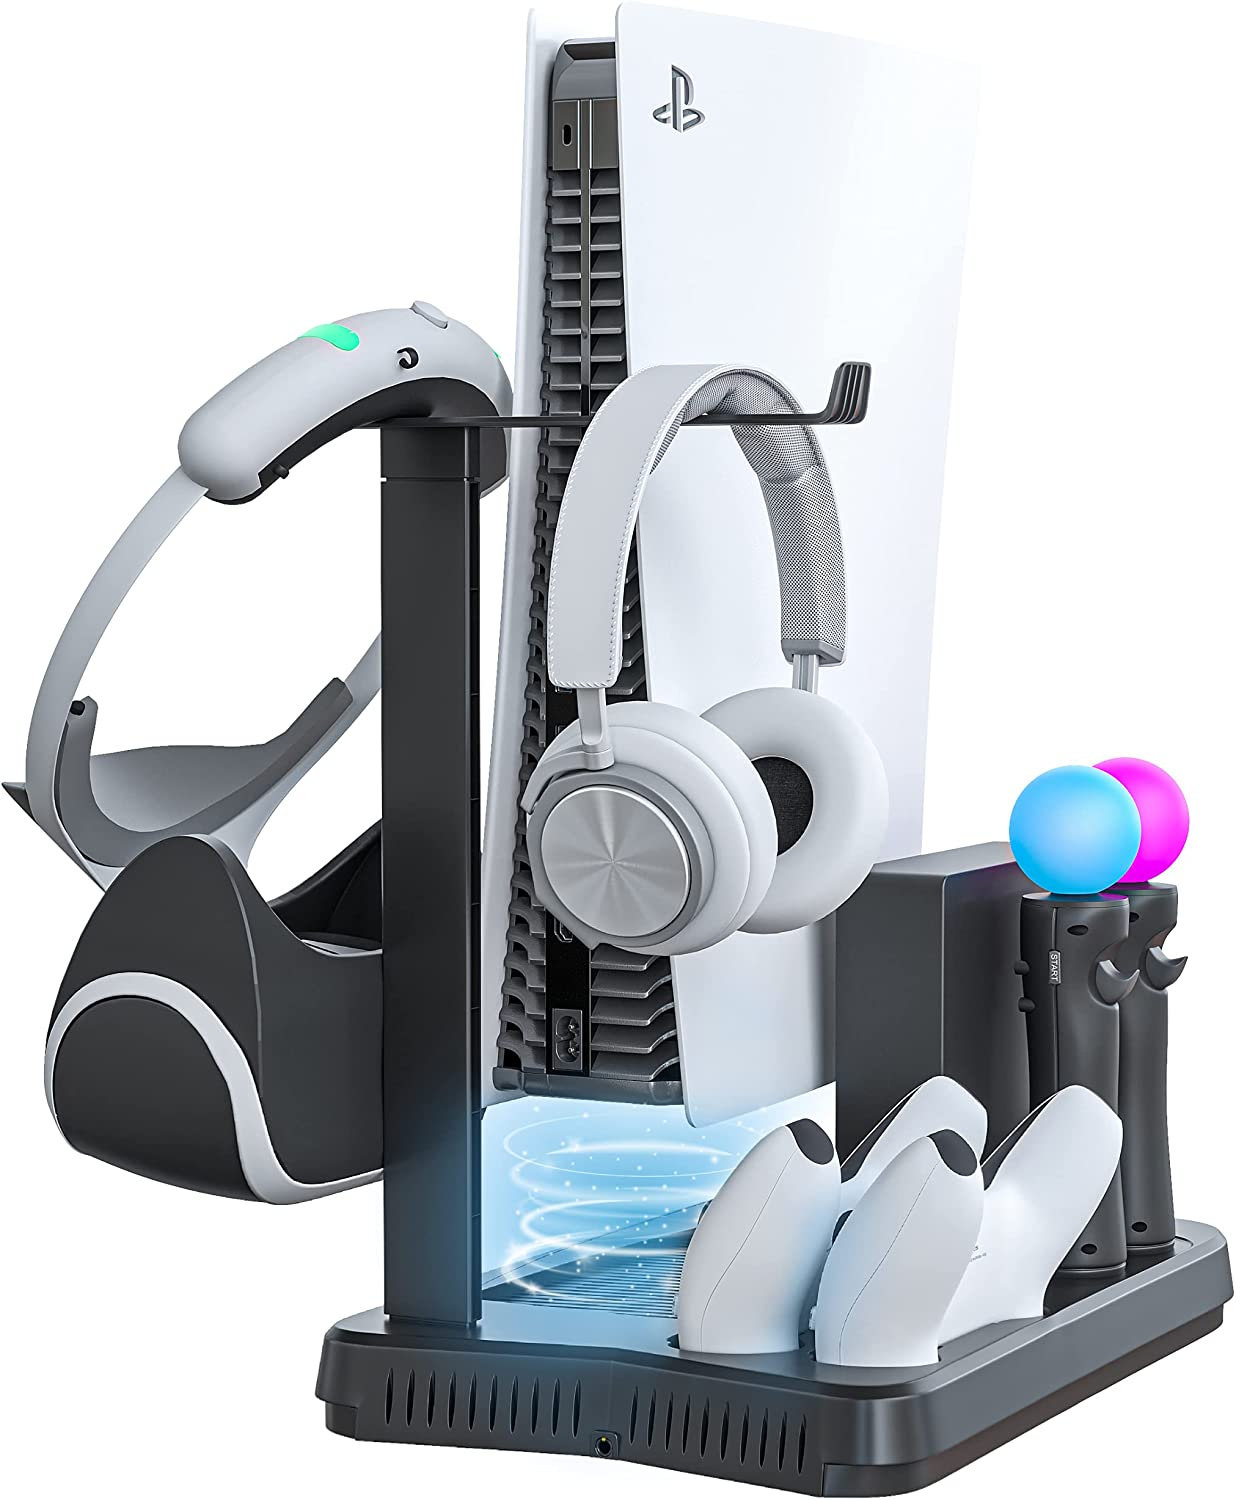 Skywin PSVR Charging Display Stand - Showcase, Cool, Charge, and Display Your PS VR - Compatible with Playstation. PS5 Headset Stand, Fan, Controller Charger and Hub (PS5 VR)